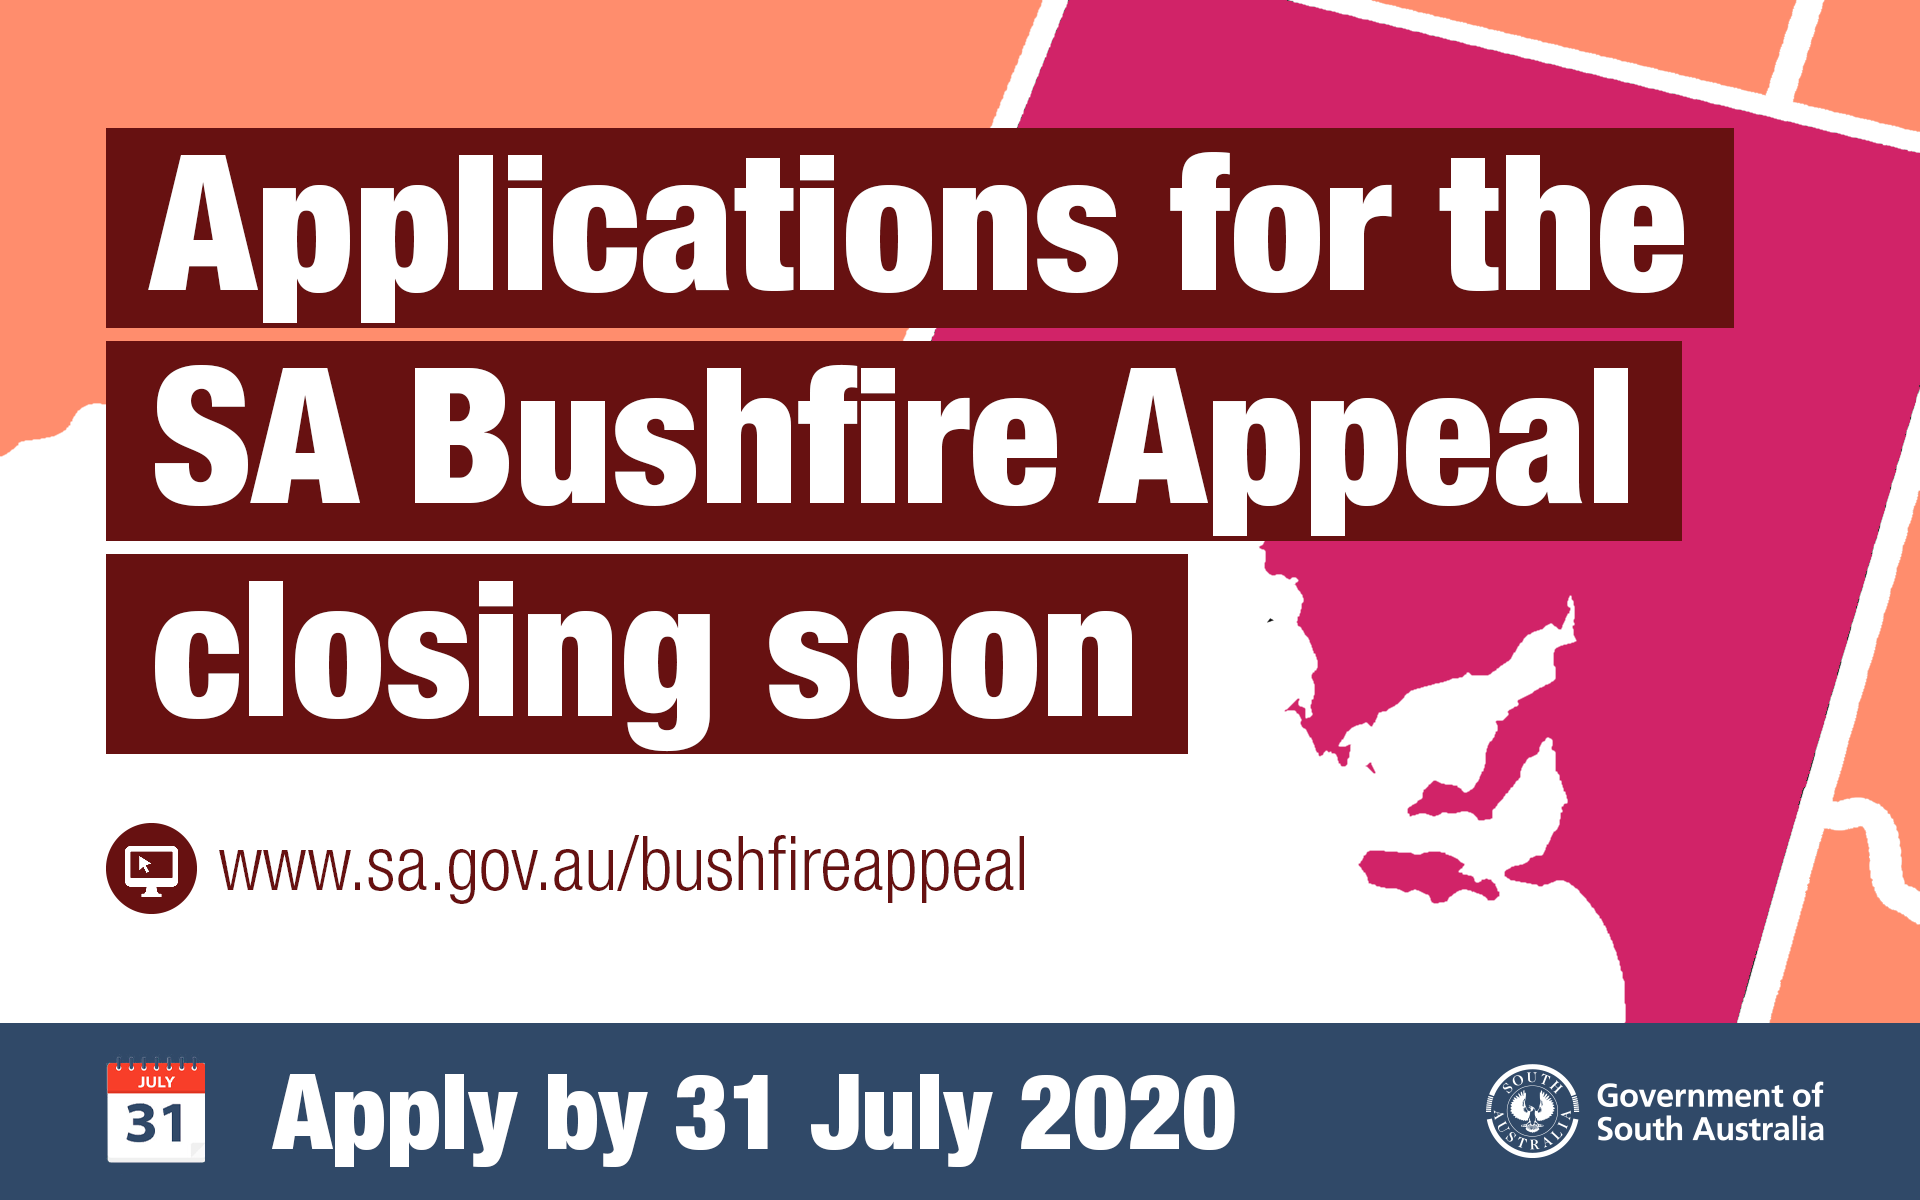 Applications for the SA Bushfire Appeal closing 31 July 2020.